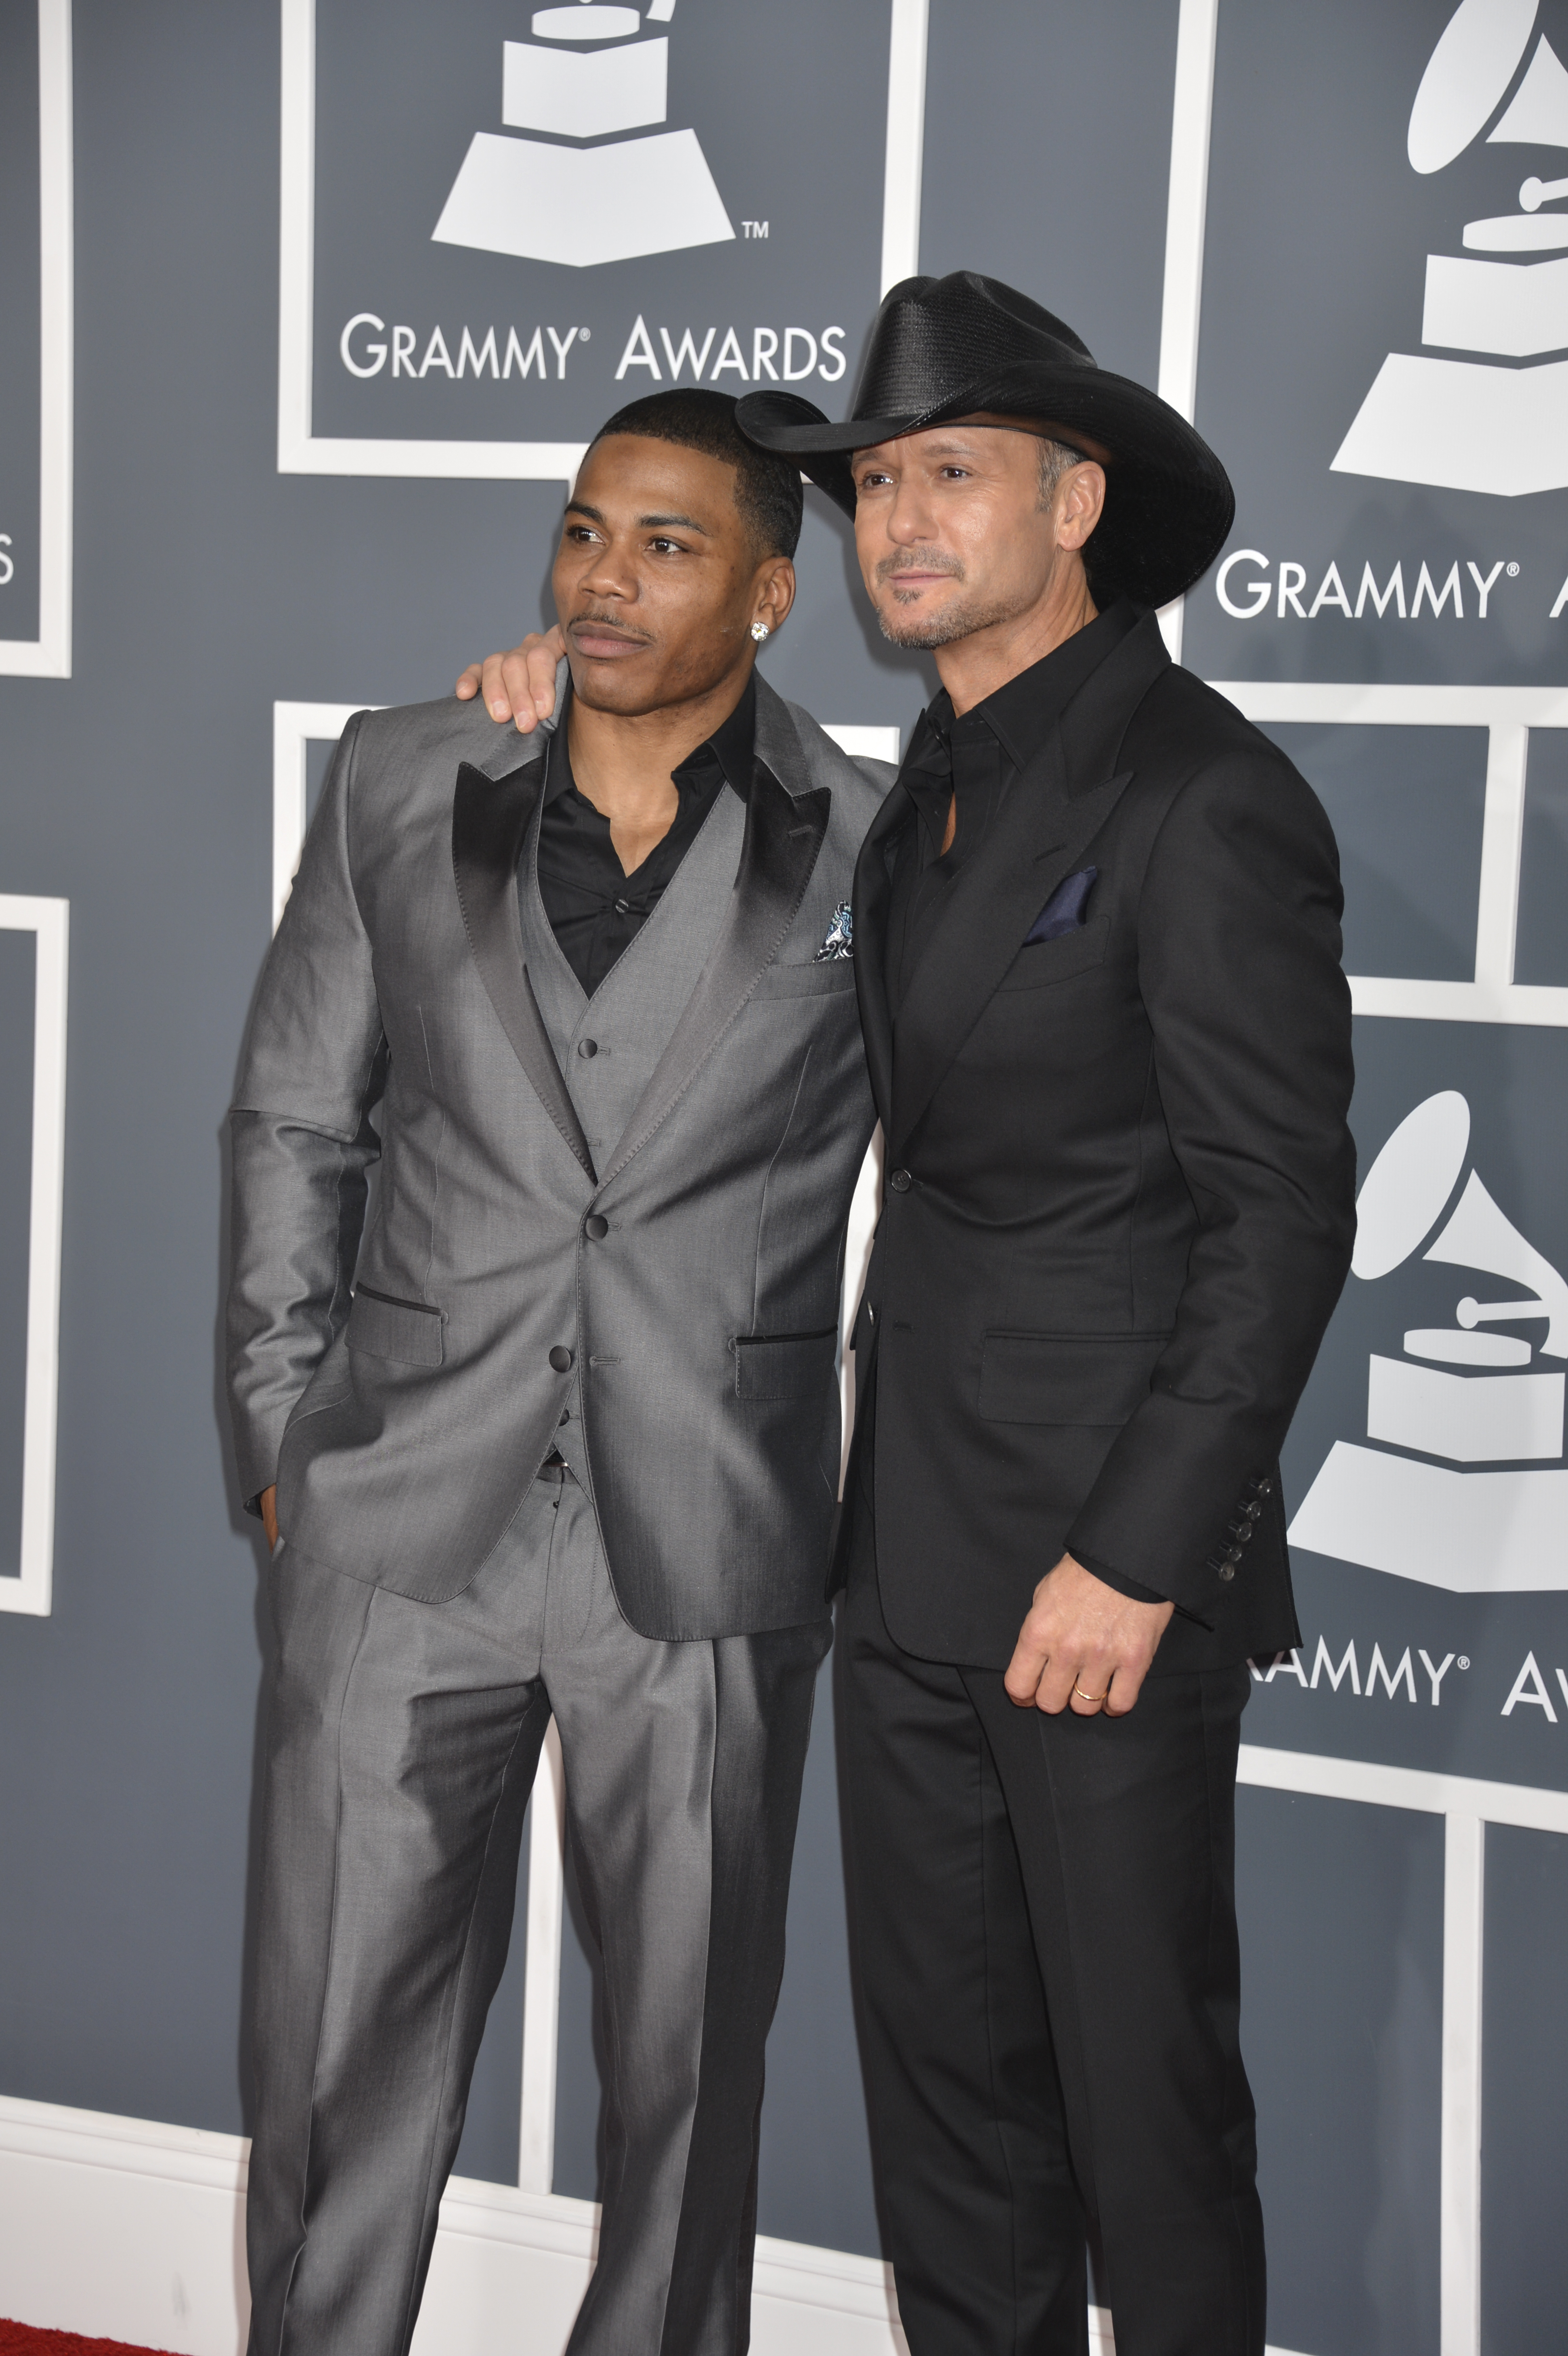 Nelly and Tim McGraw